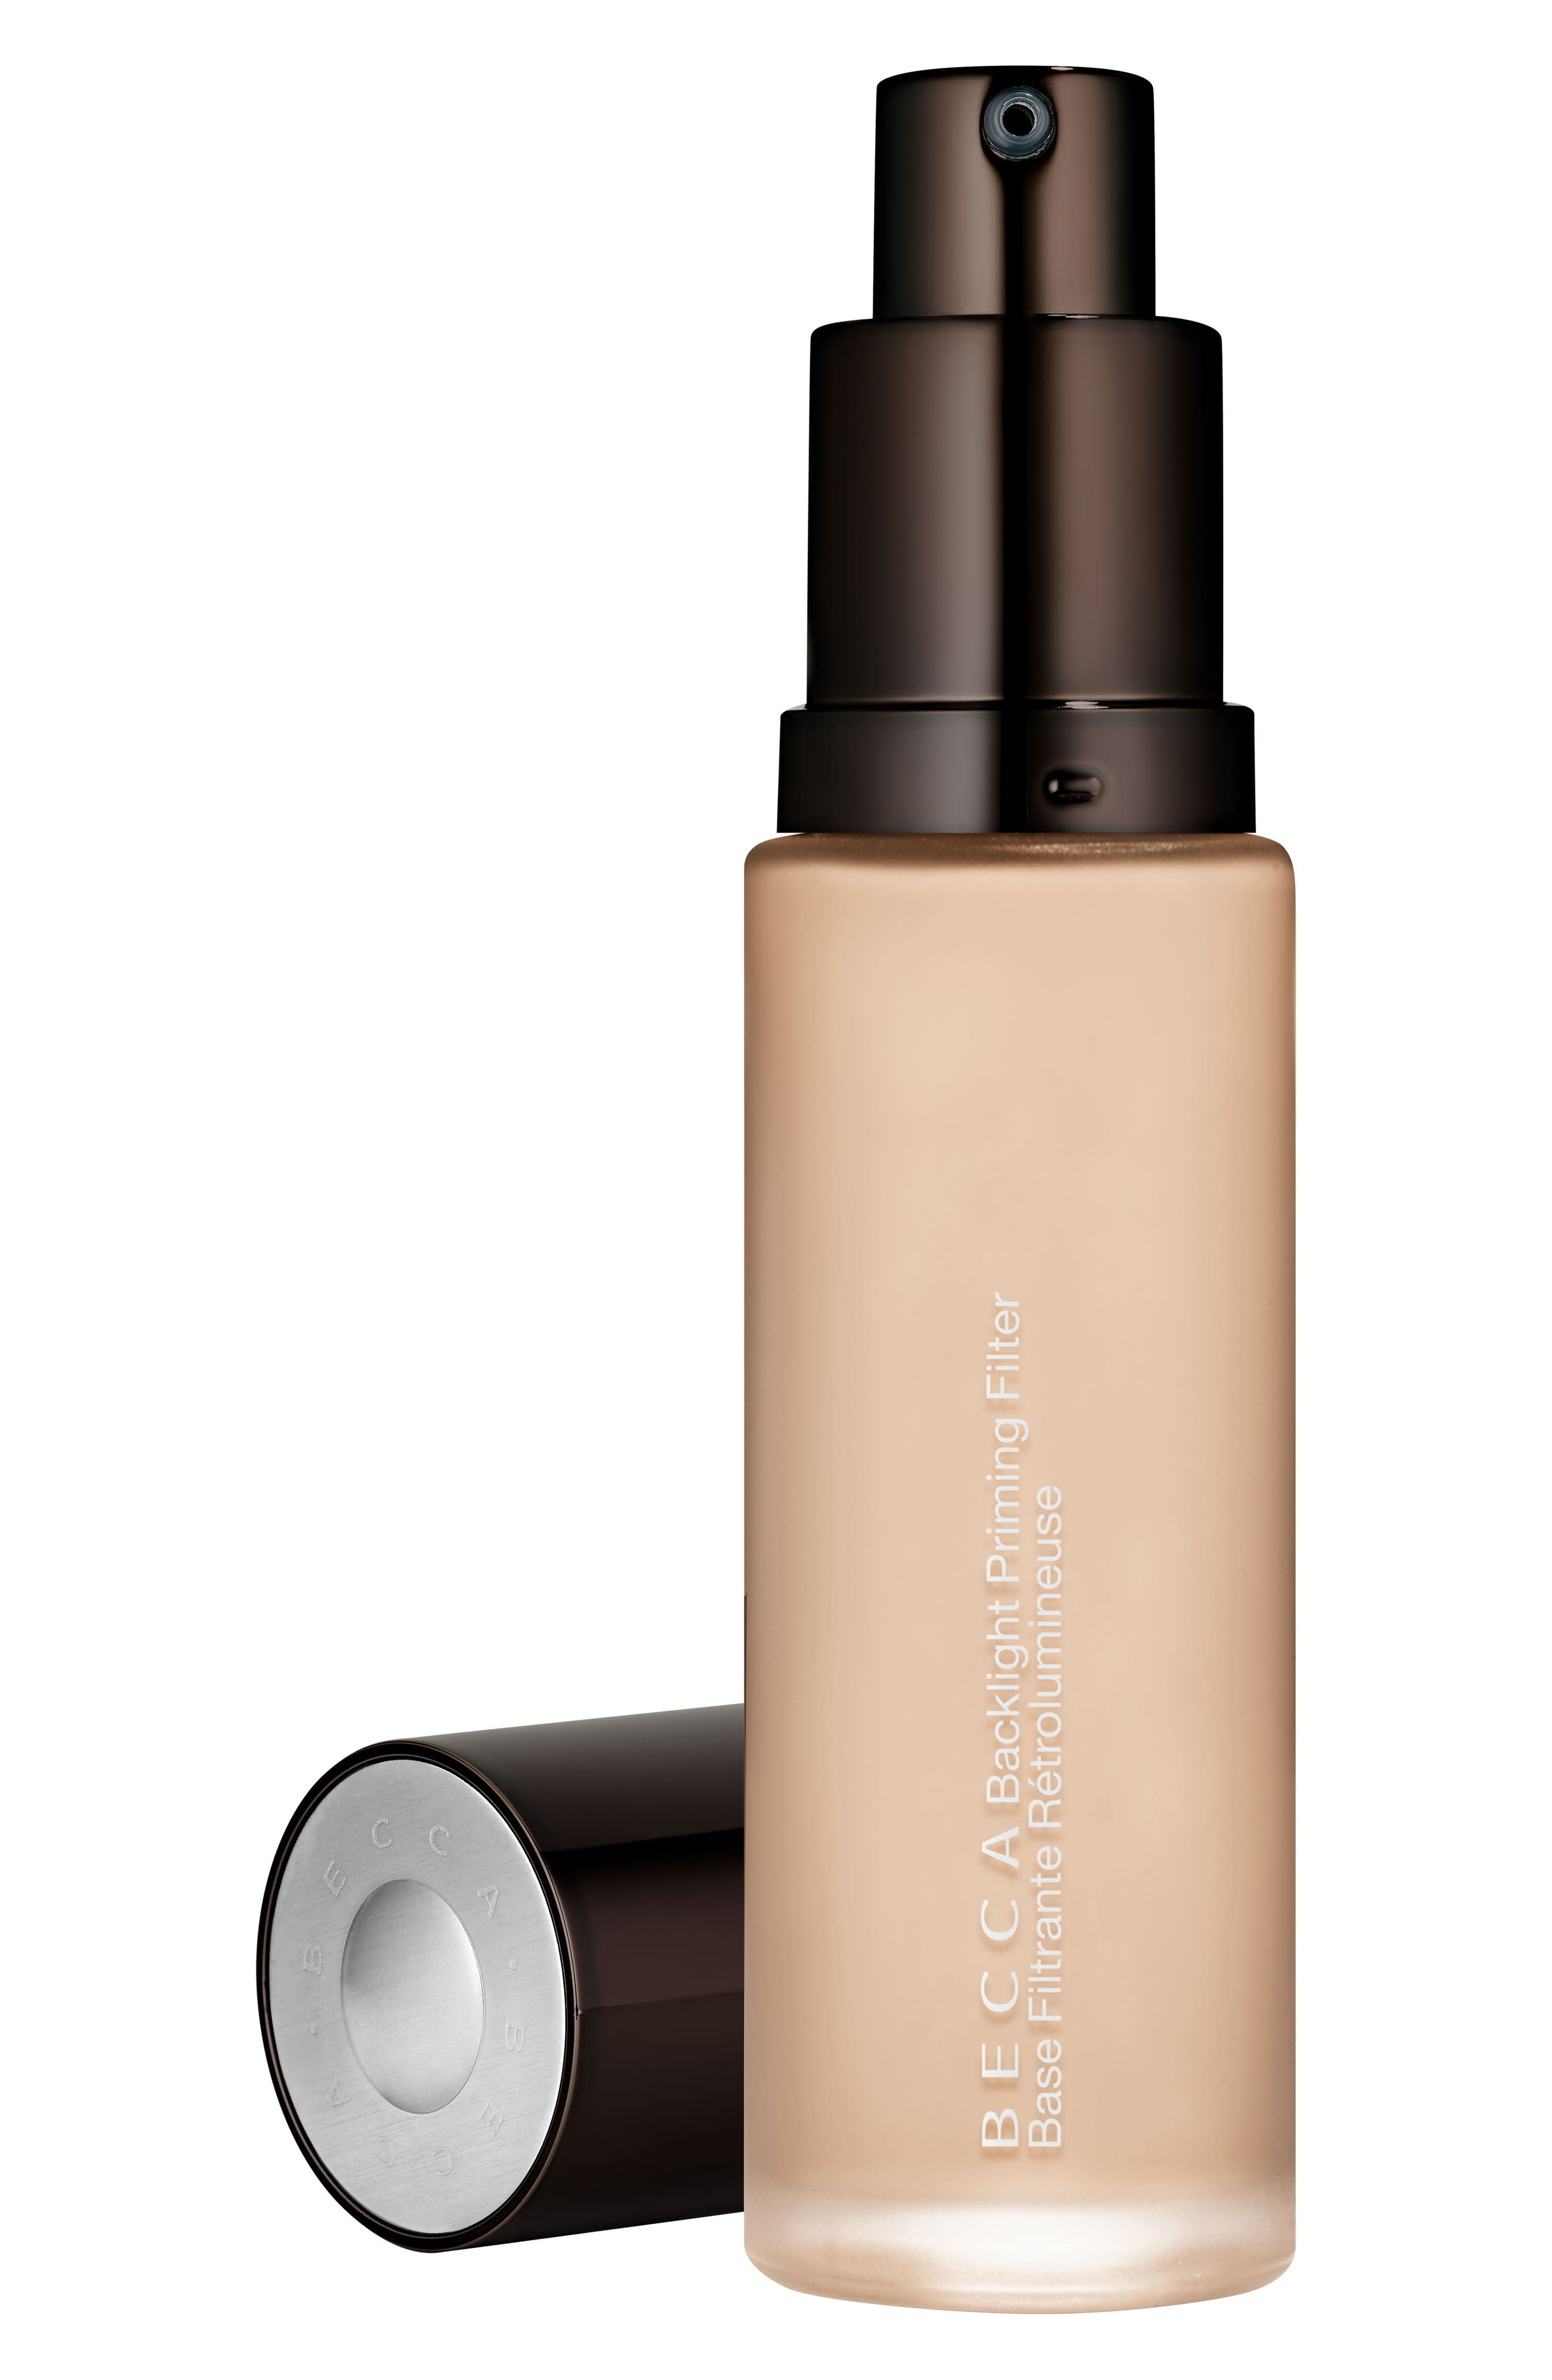 BECCA COSMETICS BECCA Backlight Priming Filter Face Primer, Main, color, NO COLOR